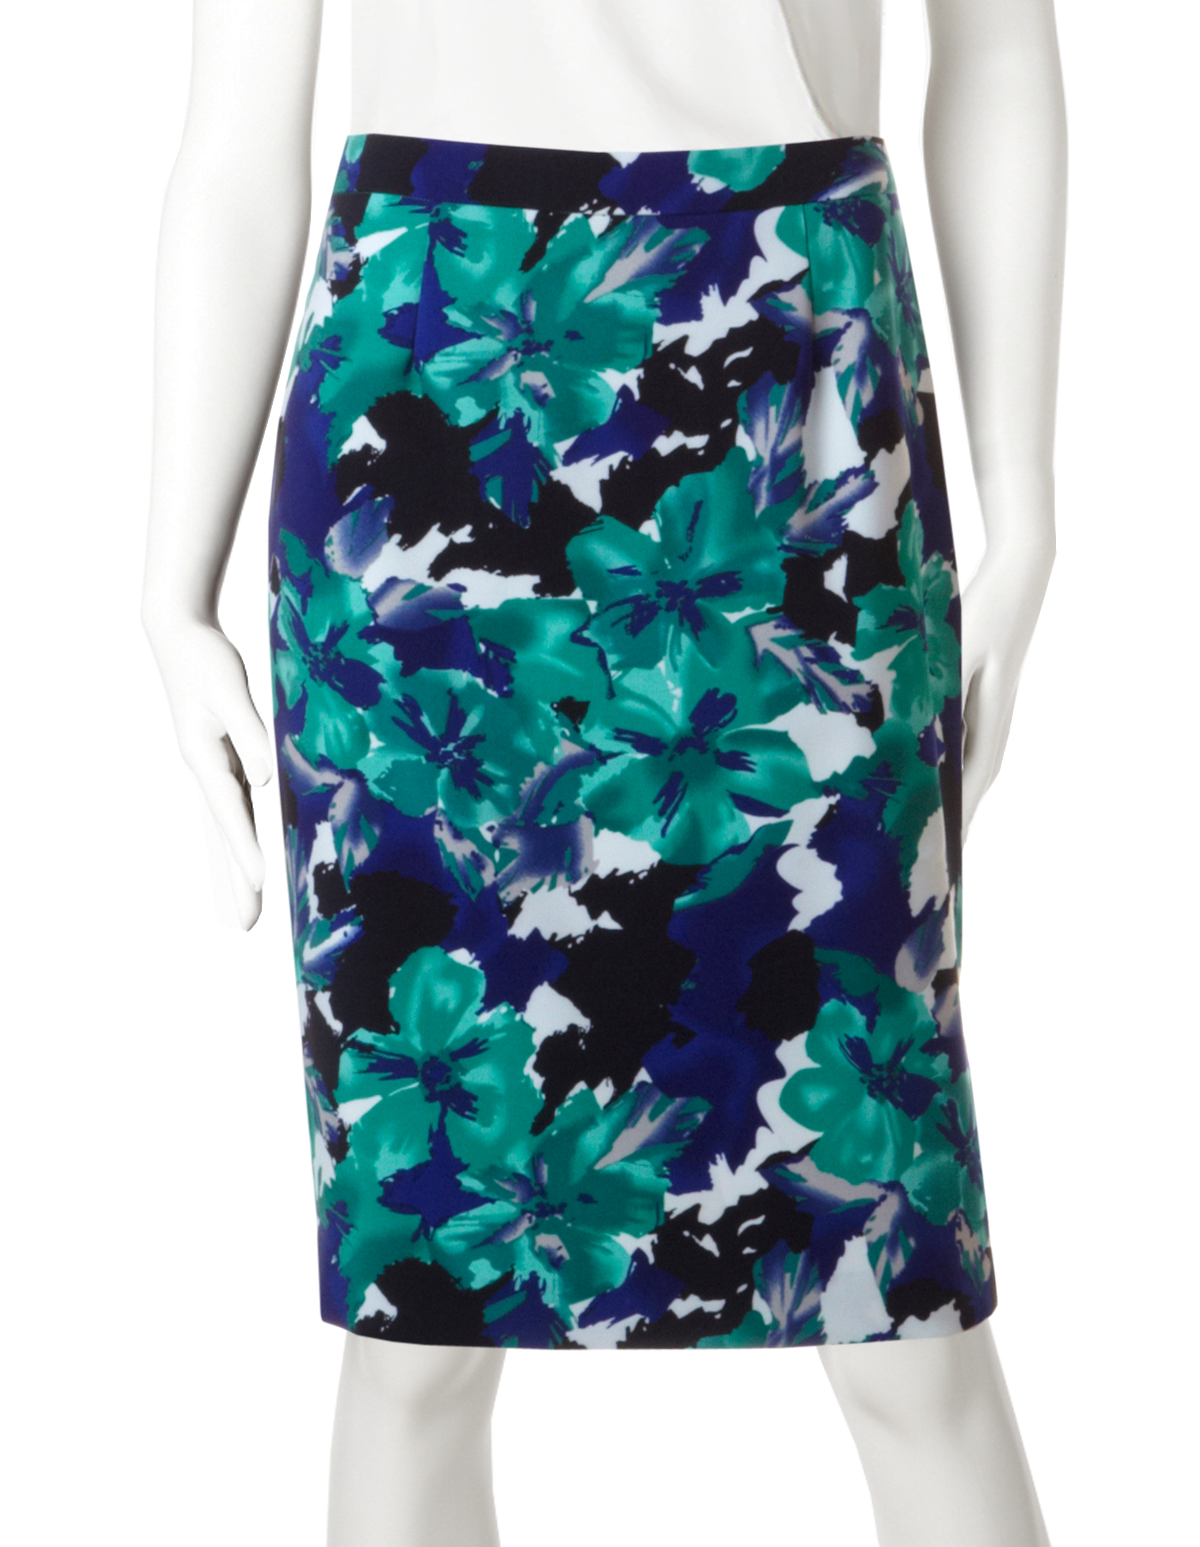 Navy short blue pencil skirt forecast to wear for on every day in 2019